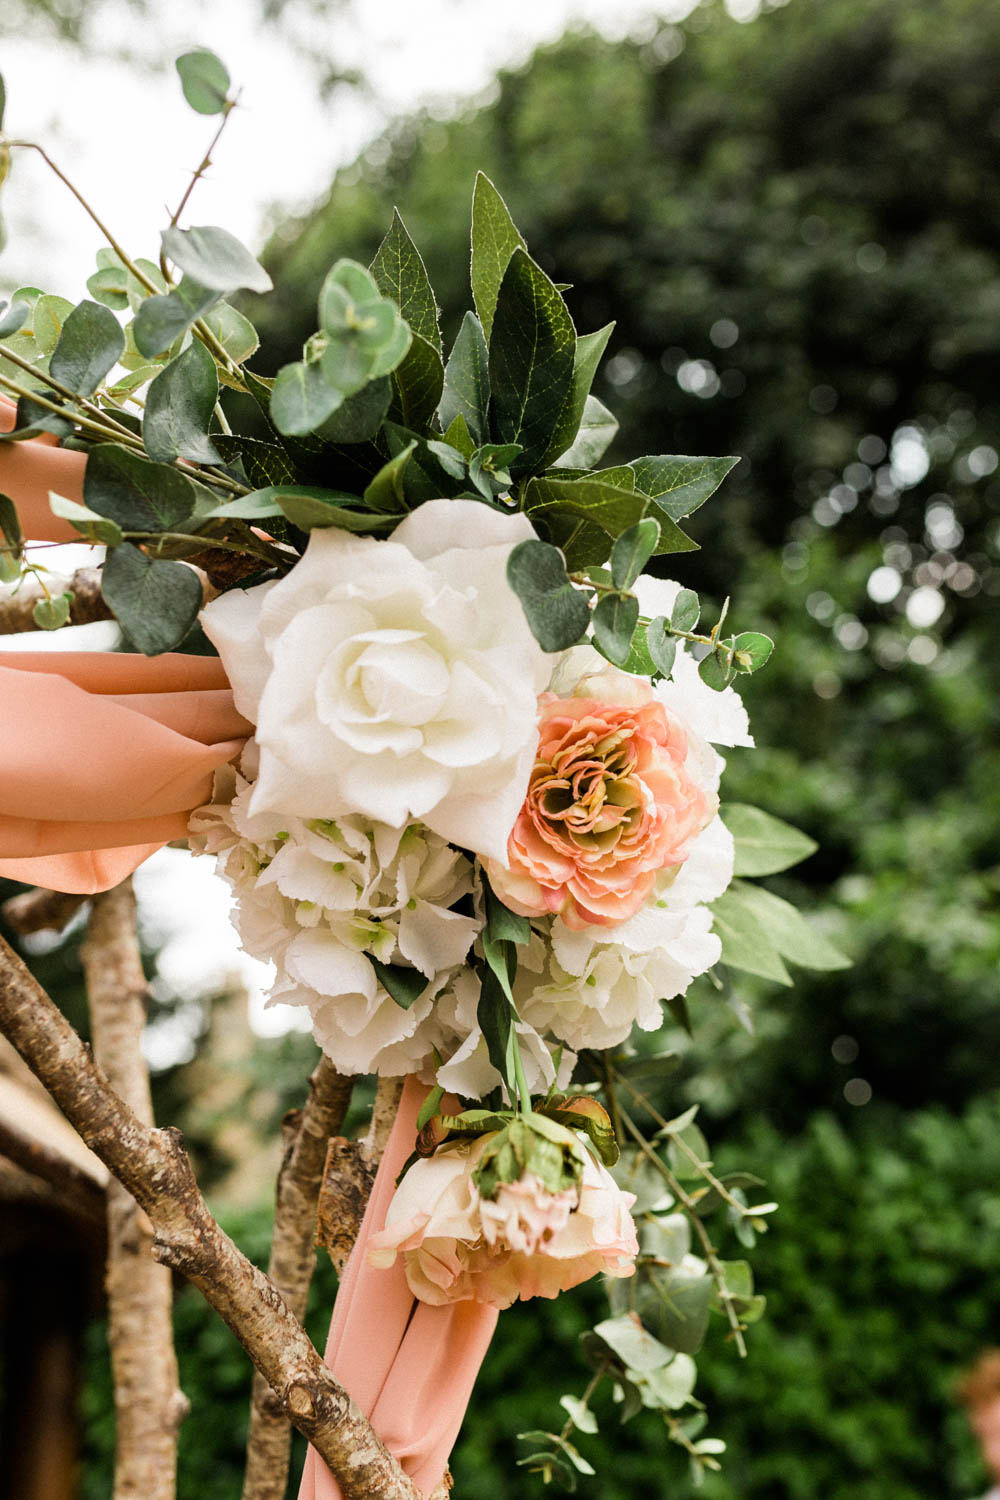 Special-Day-Photography-The-Manor-House-Hotel-Moreton-in-Marsh-Moreton-In-Marsh-Summer-Wedding-Flower-decorations-at-an-outdoor-wedding-in-teh-Cotswolds.jpg